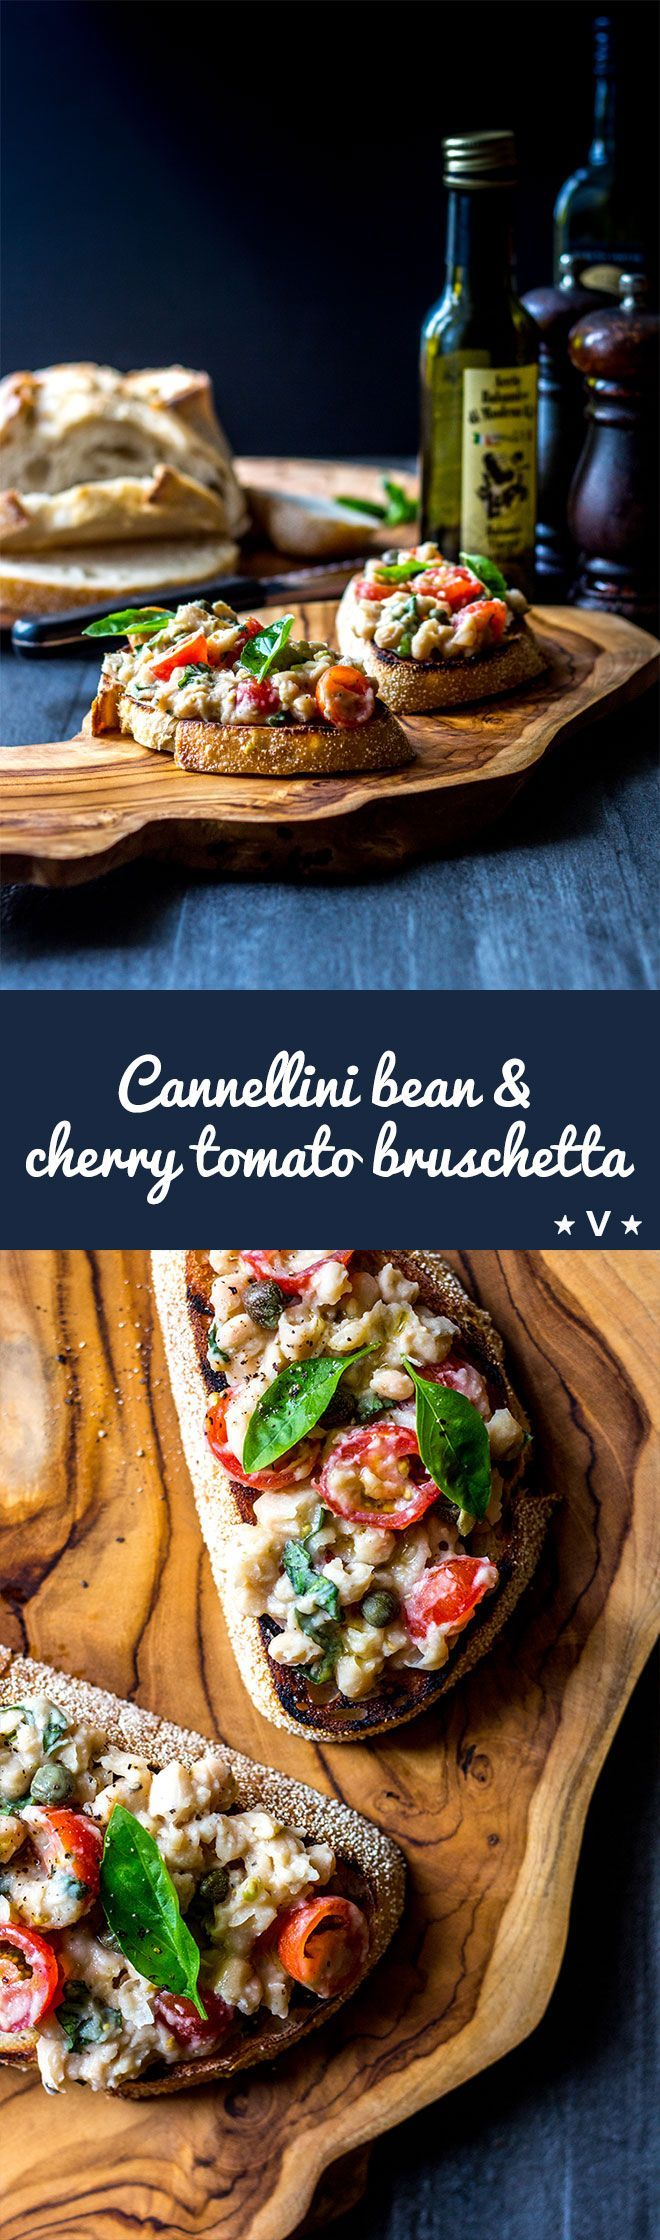 An uncomplicated but delicious vegan bruschetta topping made with cannellini beans, cherry tomatoes, basil and capers. Get it on the table in under 10 minutes, and tick all the nutritional boxes too. via @quitegoodfood